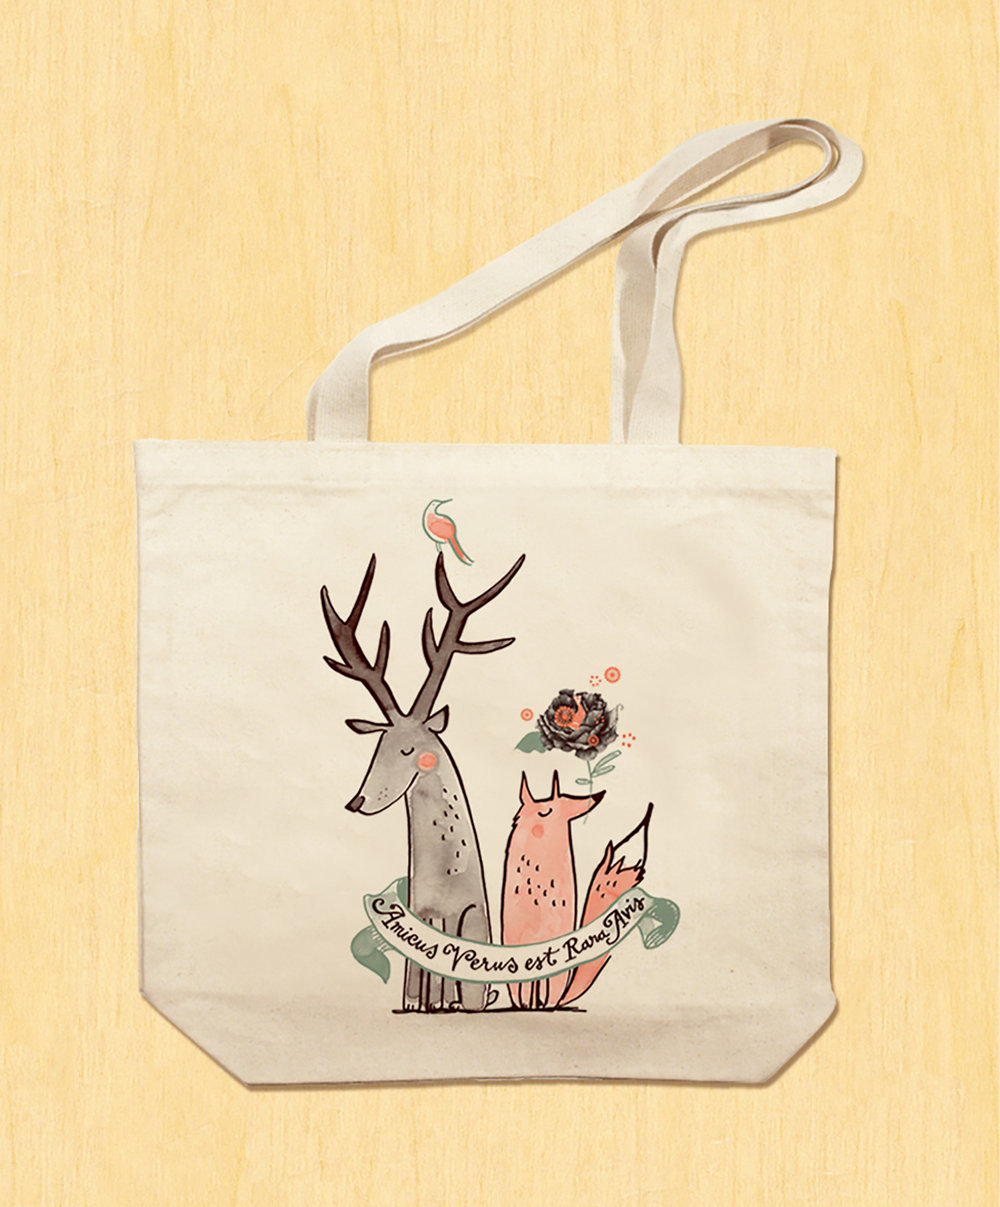 outeredit tote bag